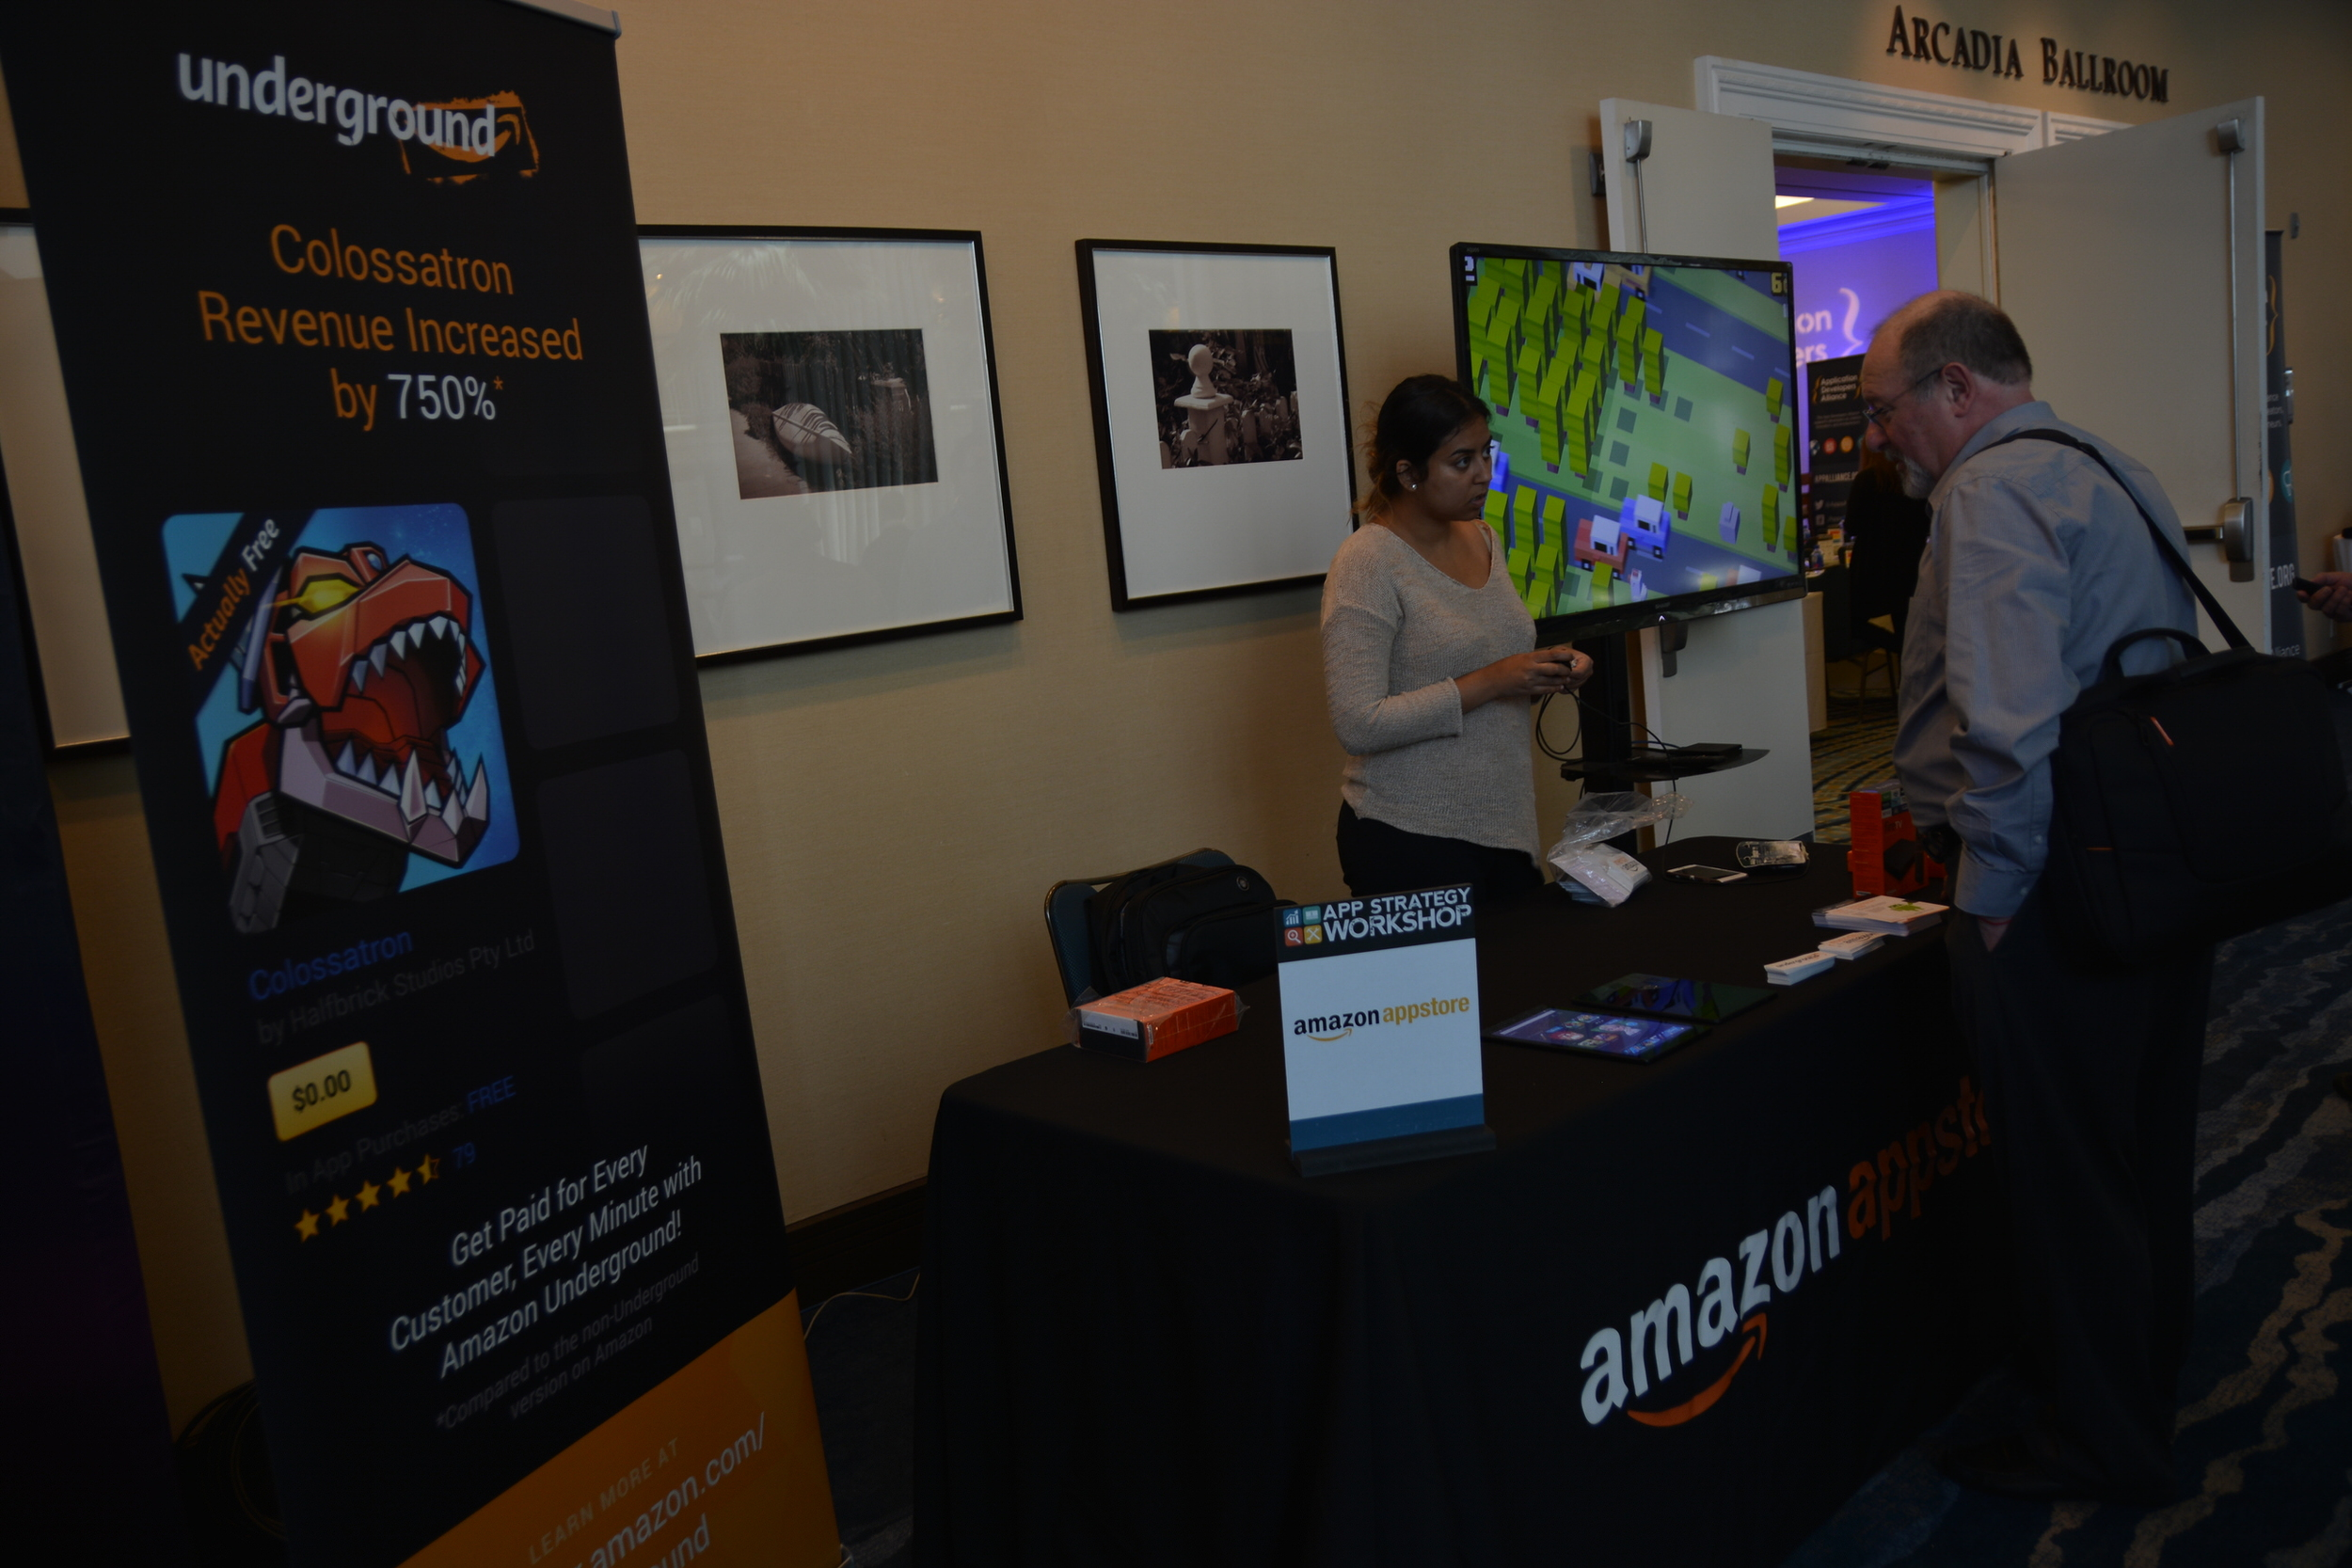 Amazon Appstore hosted a friendly Crossy Road video game competition. The winner took home an Amazon Fire TV!